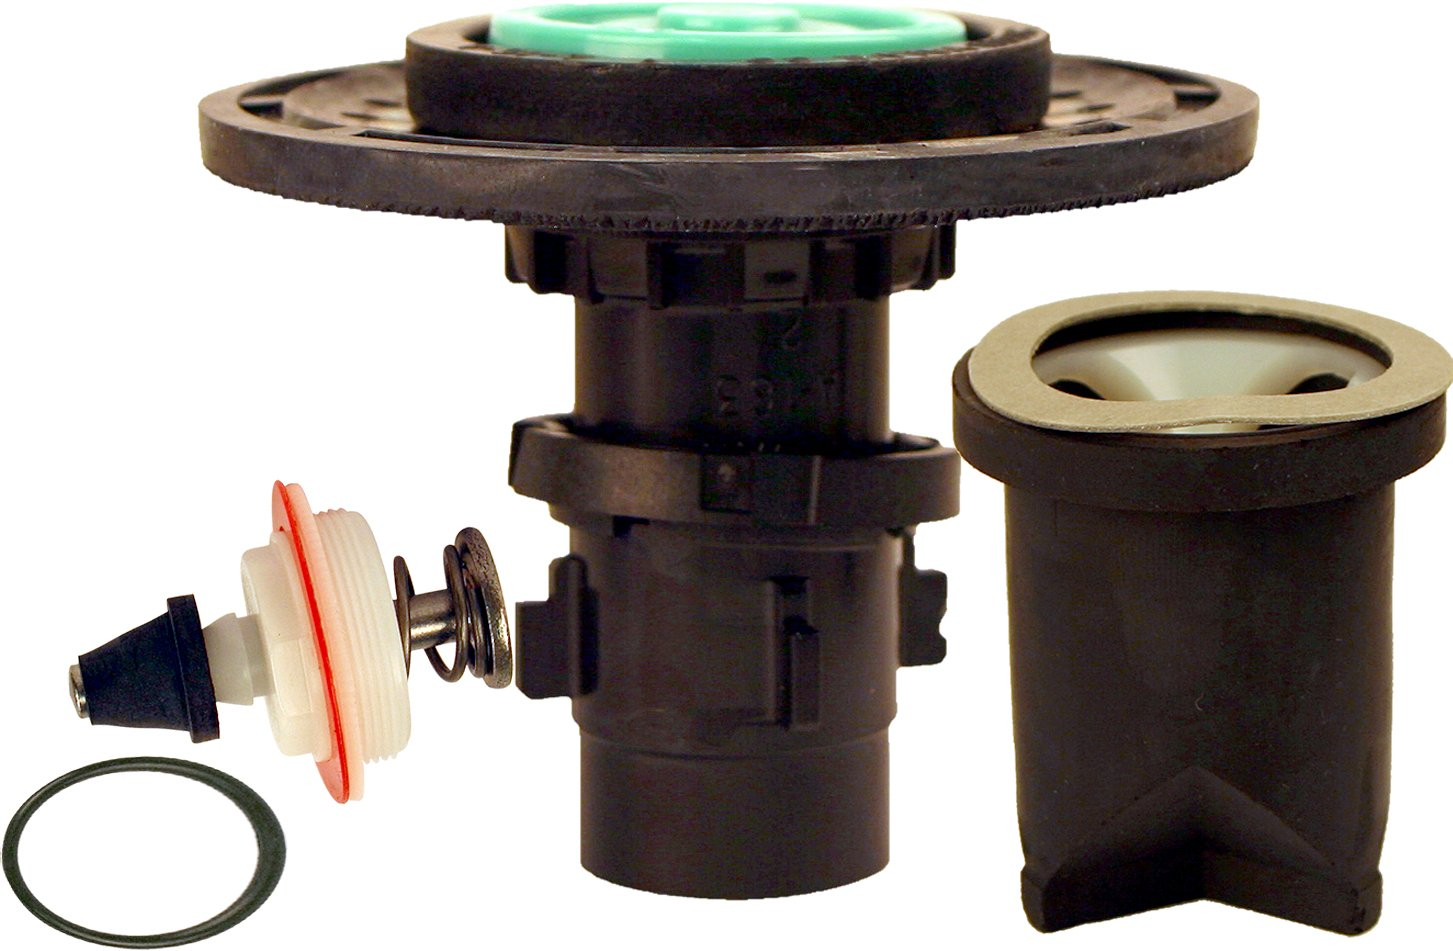 Lincoln Products R-1005-A Complete Repair Kit for 1.0-Gallon Urinal